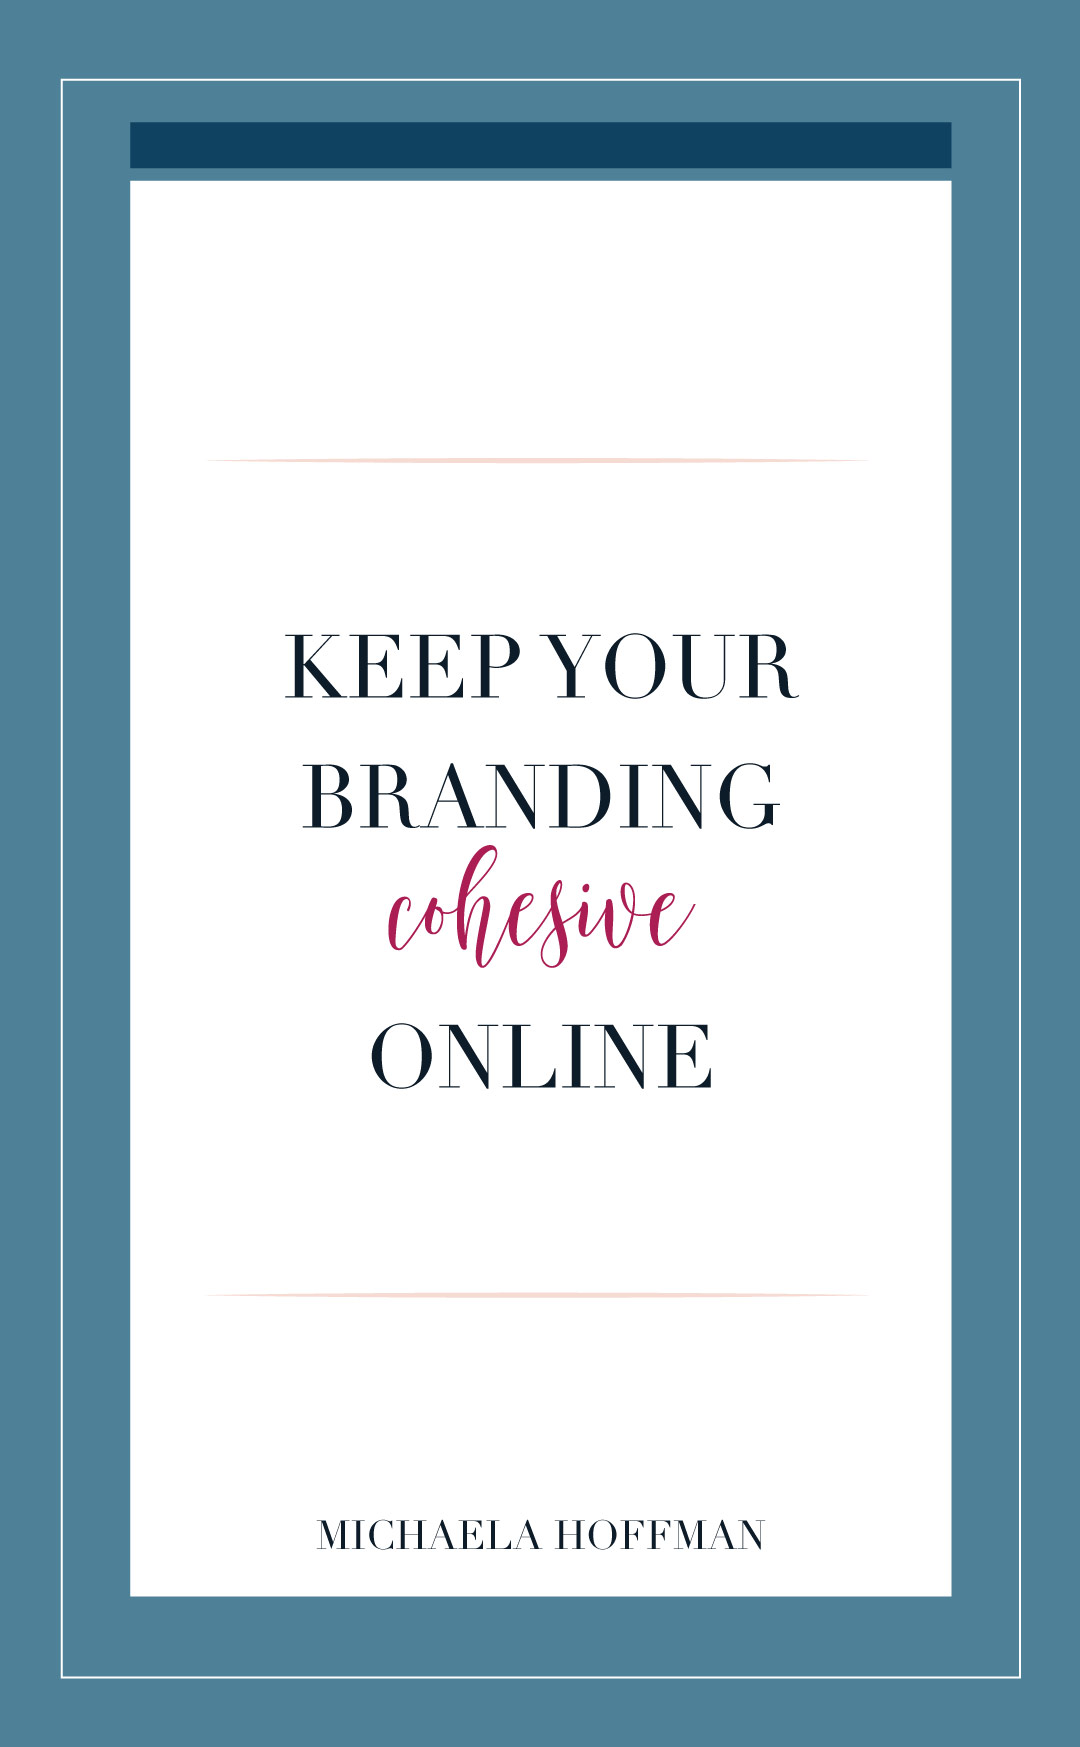 Are you struggling with keeping your branding cohesive online? If you are a small business owner, blogger, or entrepreneur trying to build a community online having a consistent cohesive brand online is huge for business growth. How to keep your branding cohesive online.